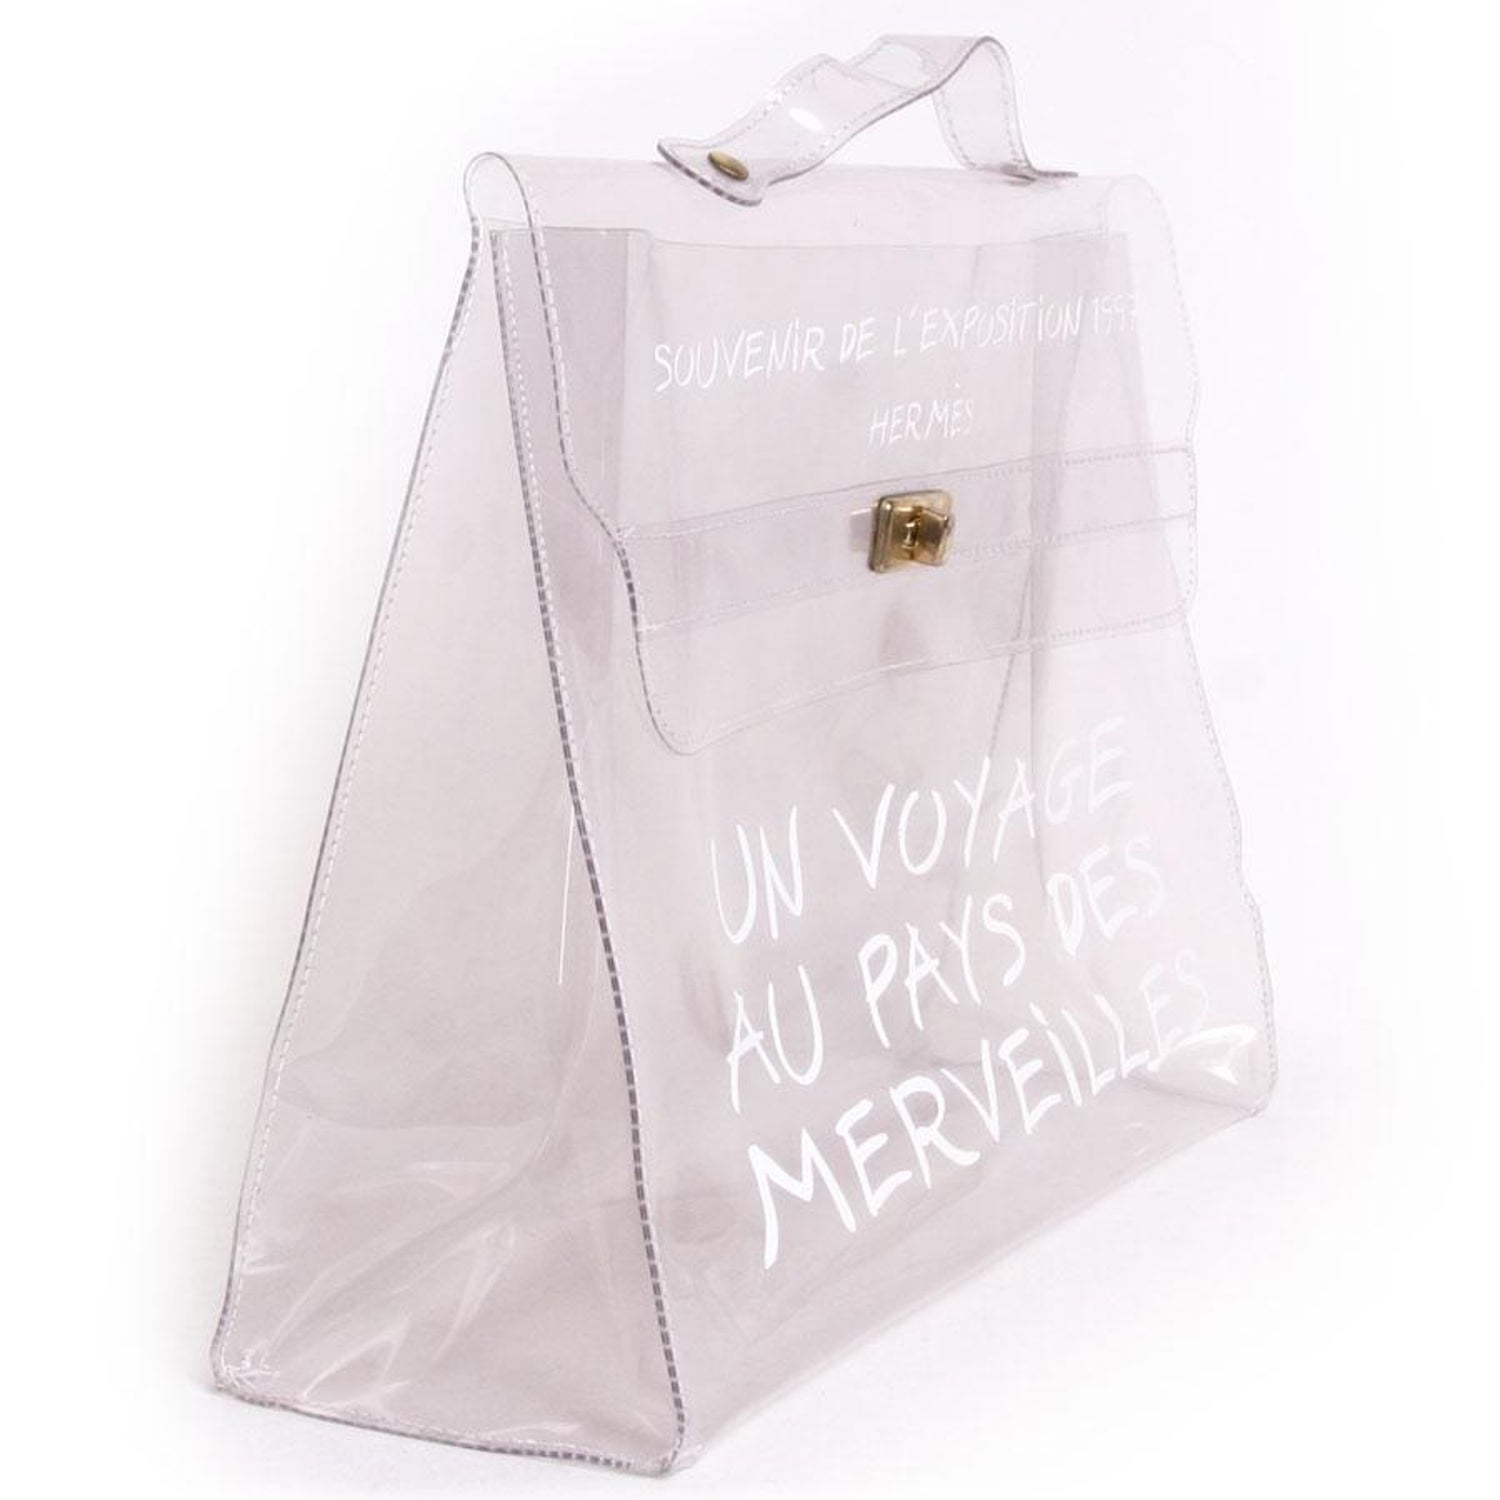 3cd0b86525a0 Collector HERMES Vintage Kelly Bag  Au Pays des Merveilles  in Transparent  Vinyl For Sale at 1stdibs